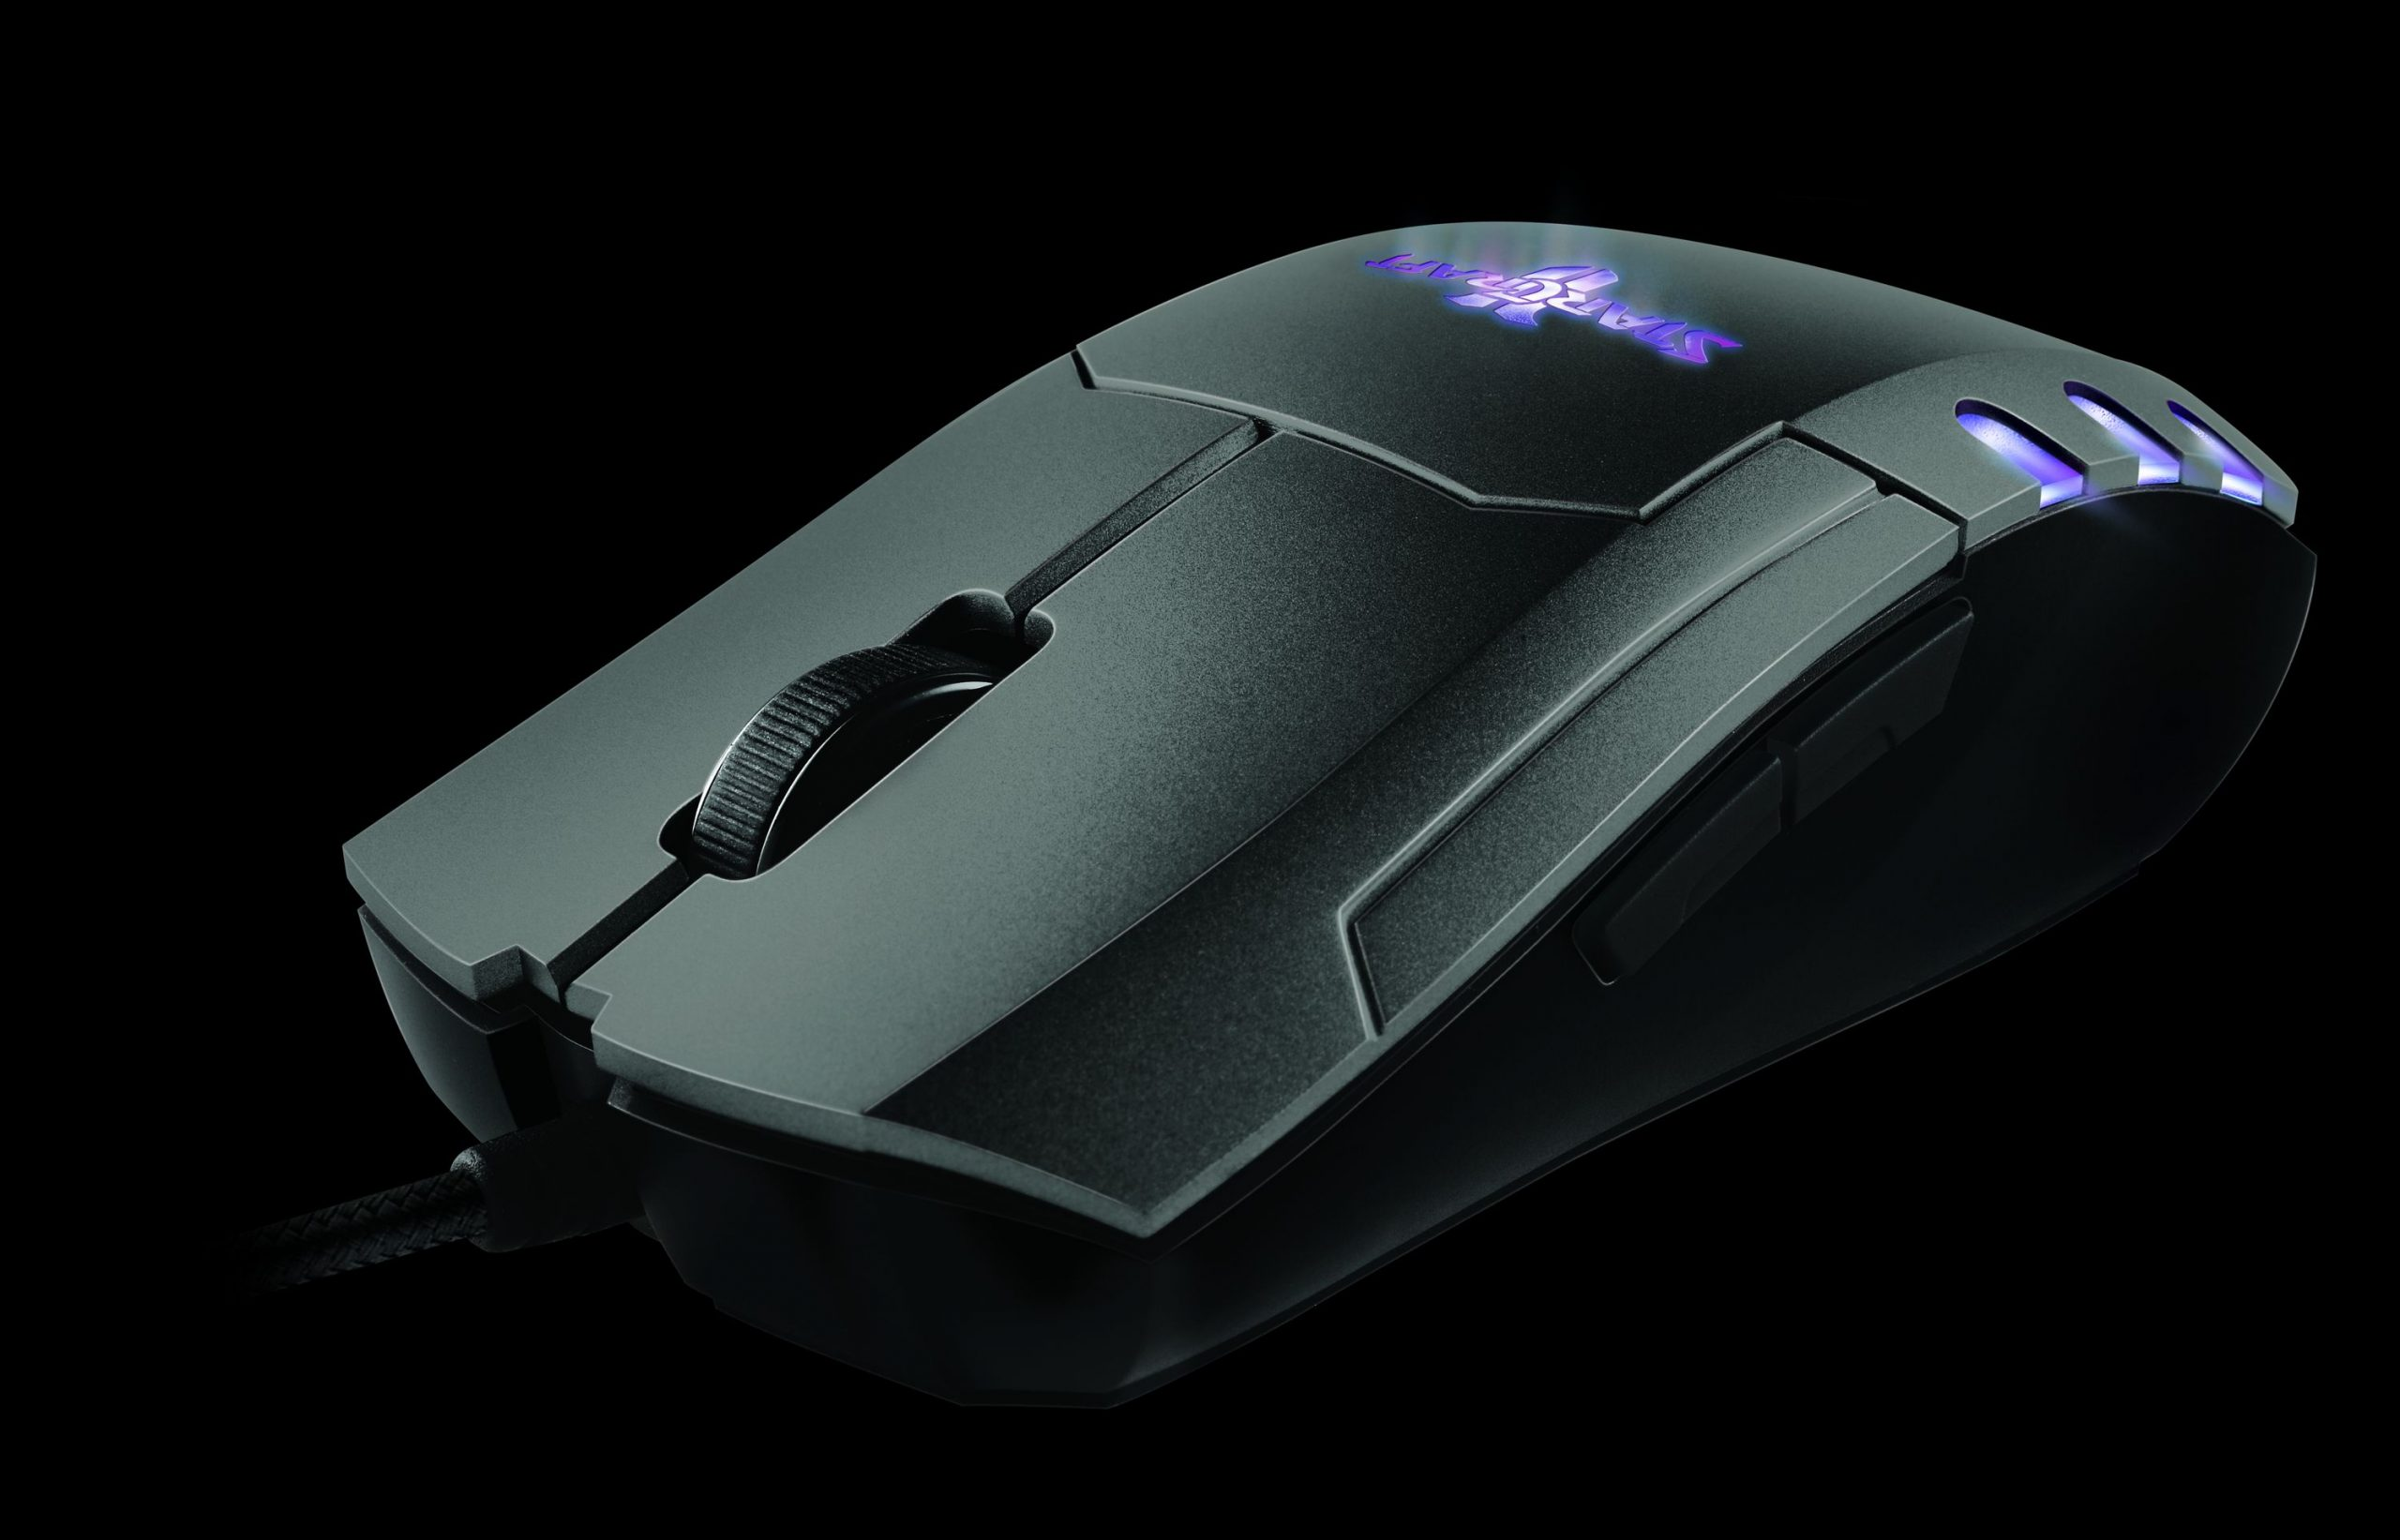 Razer Spectre Gaming Mouse Review